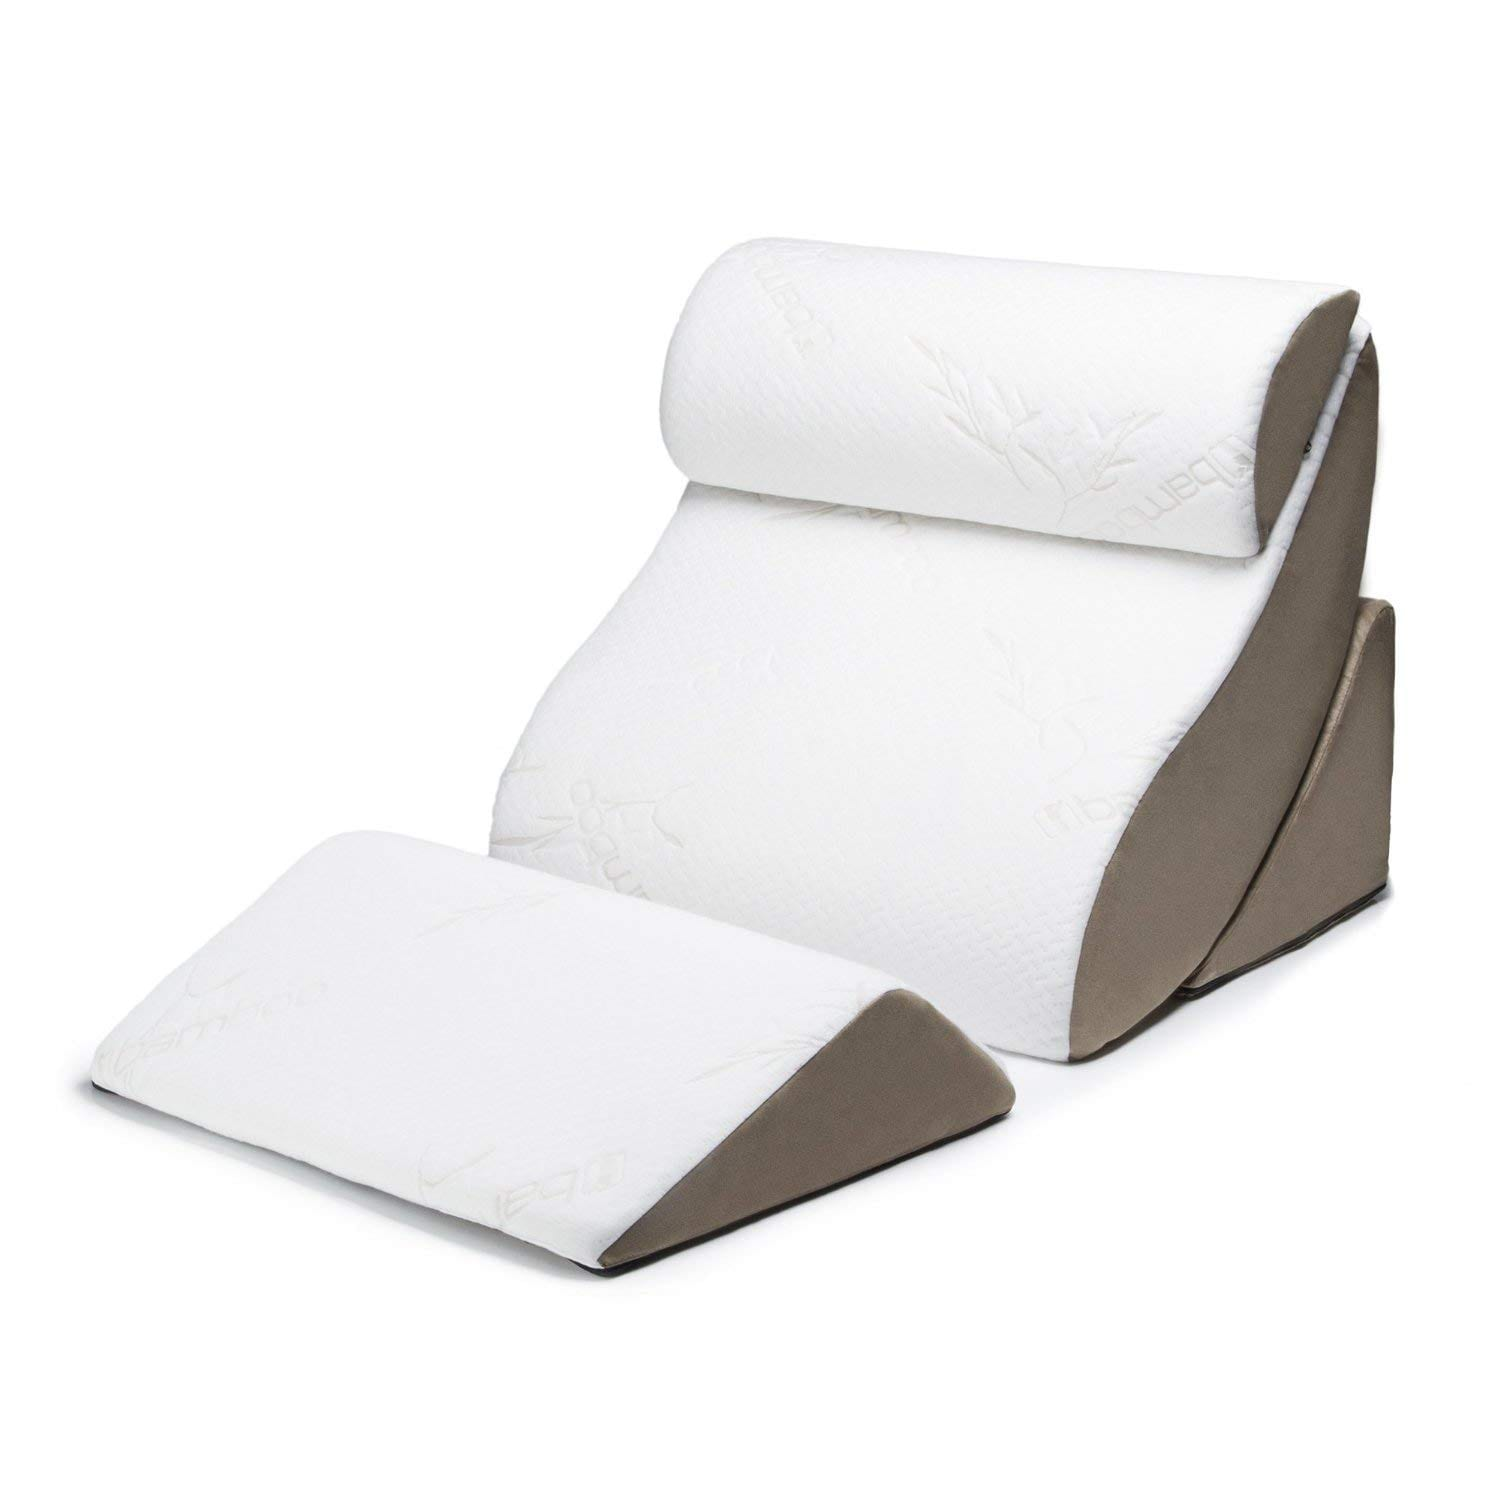 Avana Orthopedic Pillow Review by www.snoremagazine.com